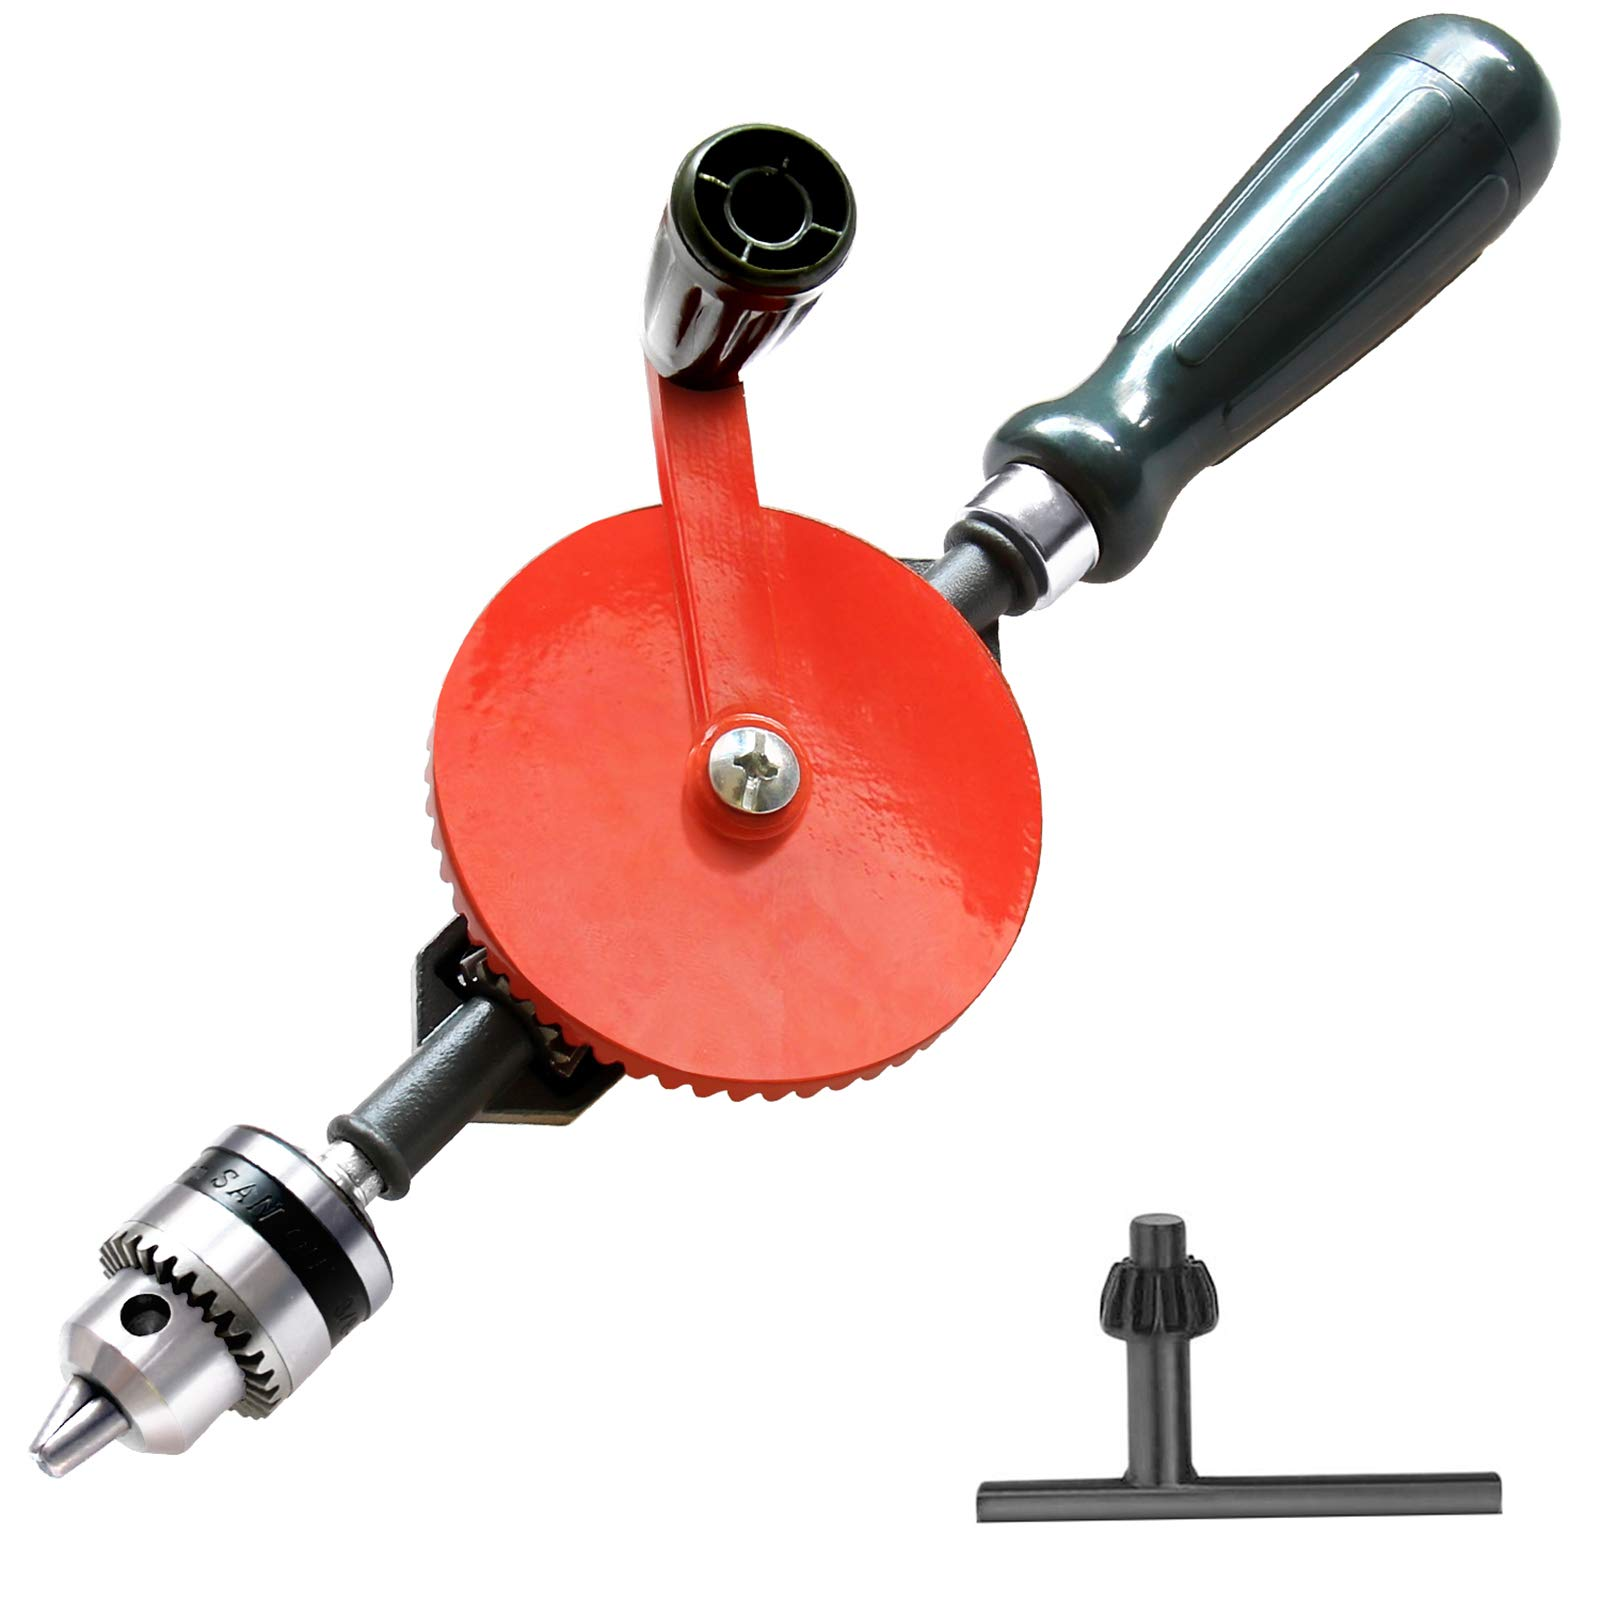 Frylr Hand Drill Speedy Powerful Manual Hand Crank Drill 3/8 inch(0.8MM-1.8MM) With S/S cast 3 Jaw Chucks, ABS Anti Slip Handle